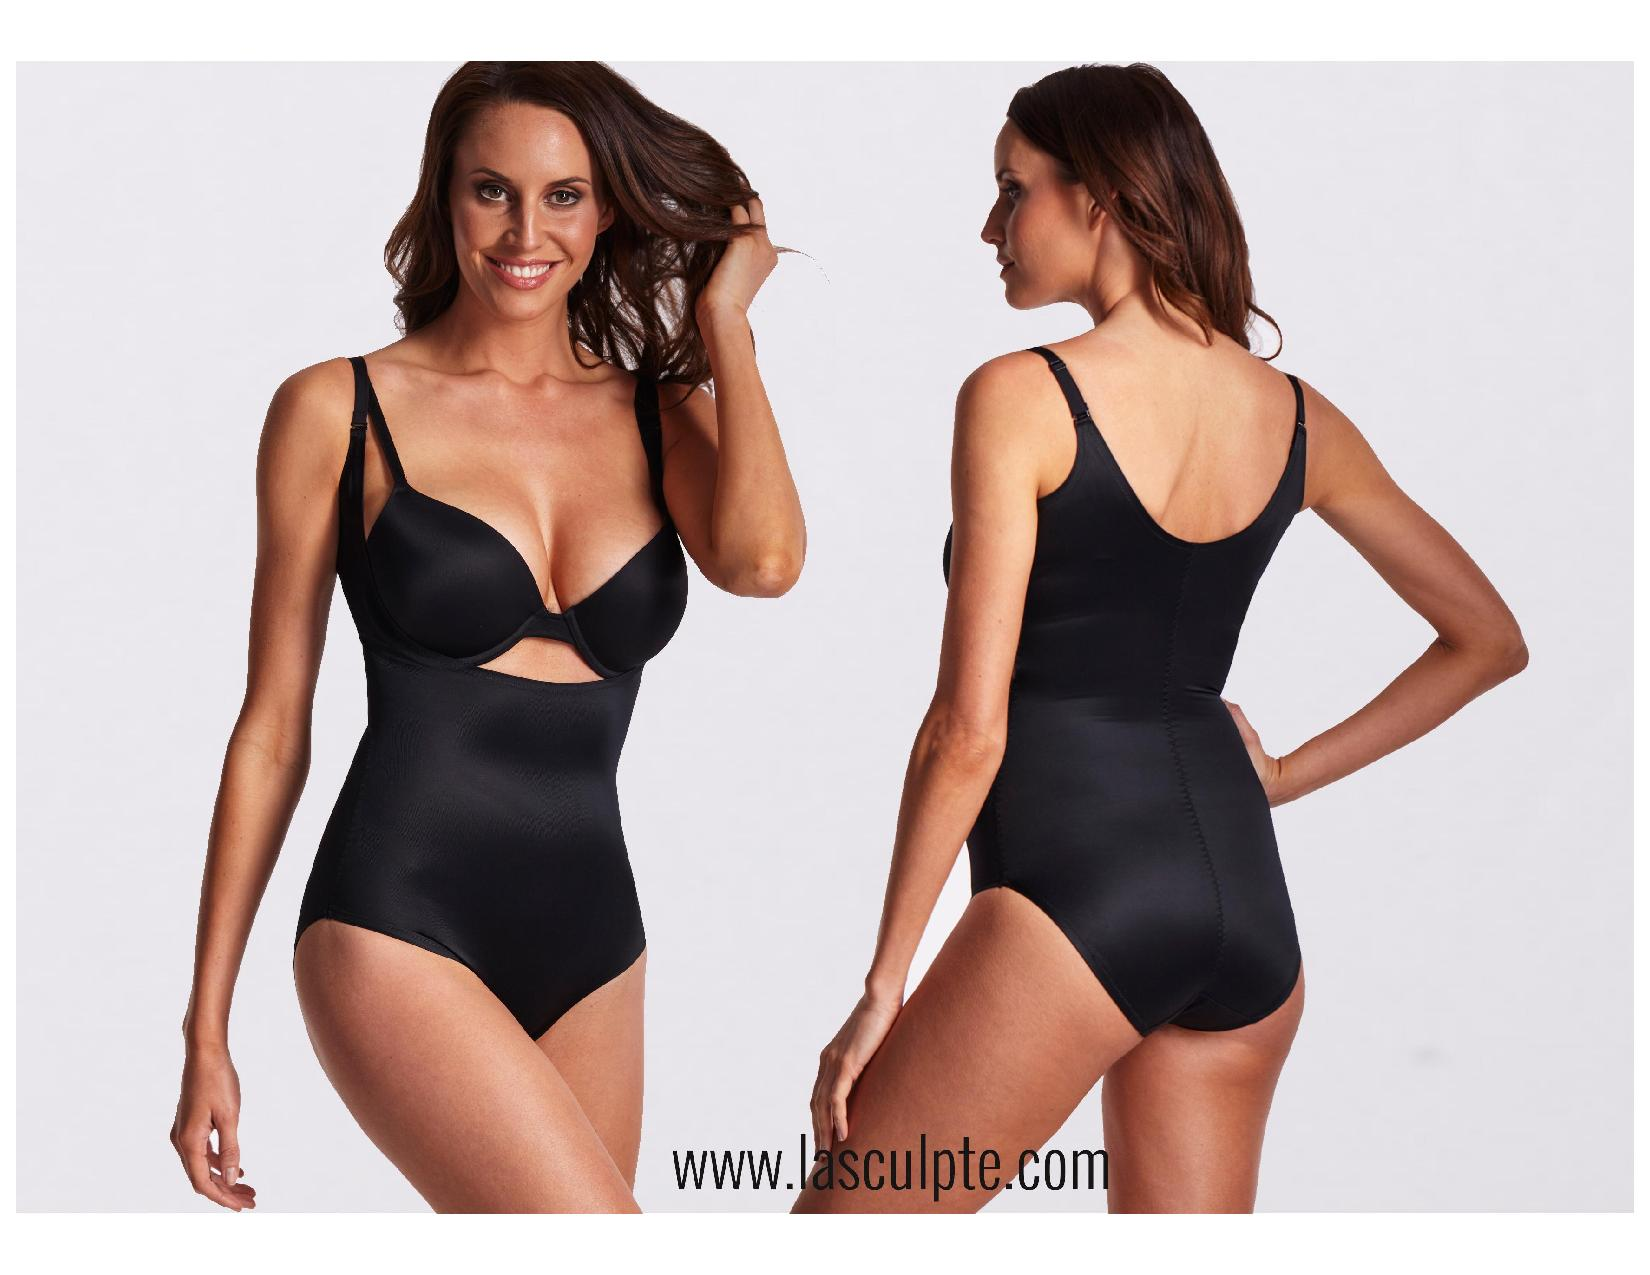 Lasculpte lookbook - Shapewear-page-006